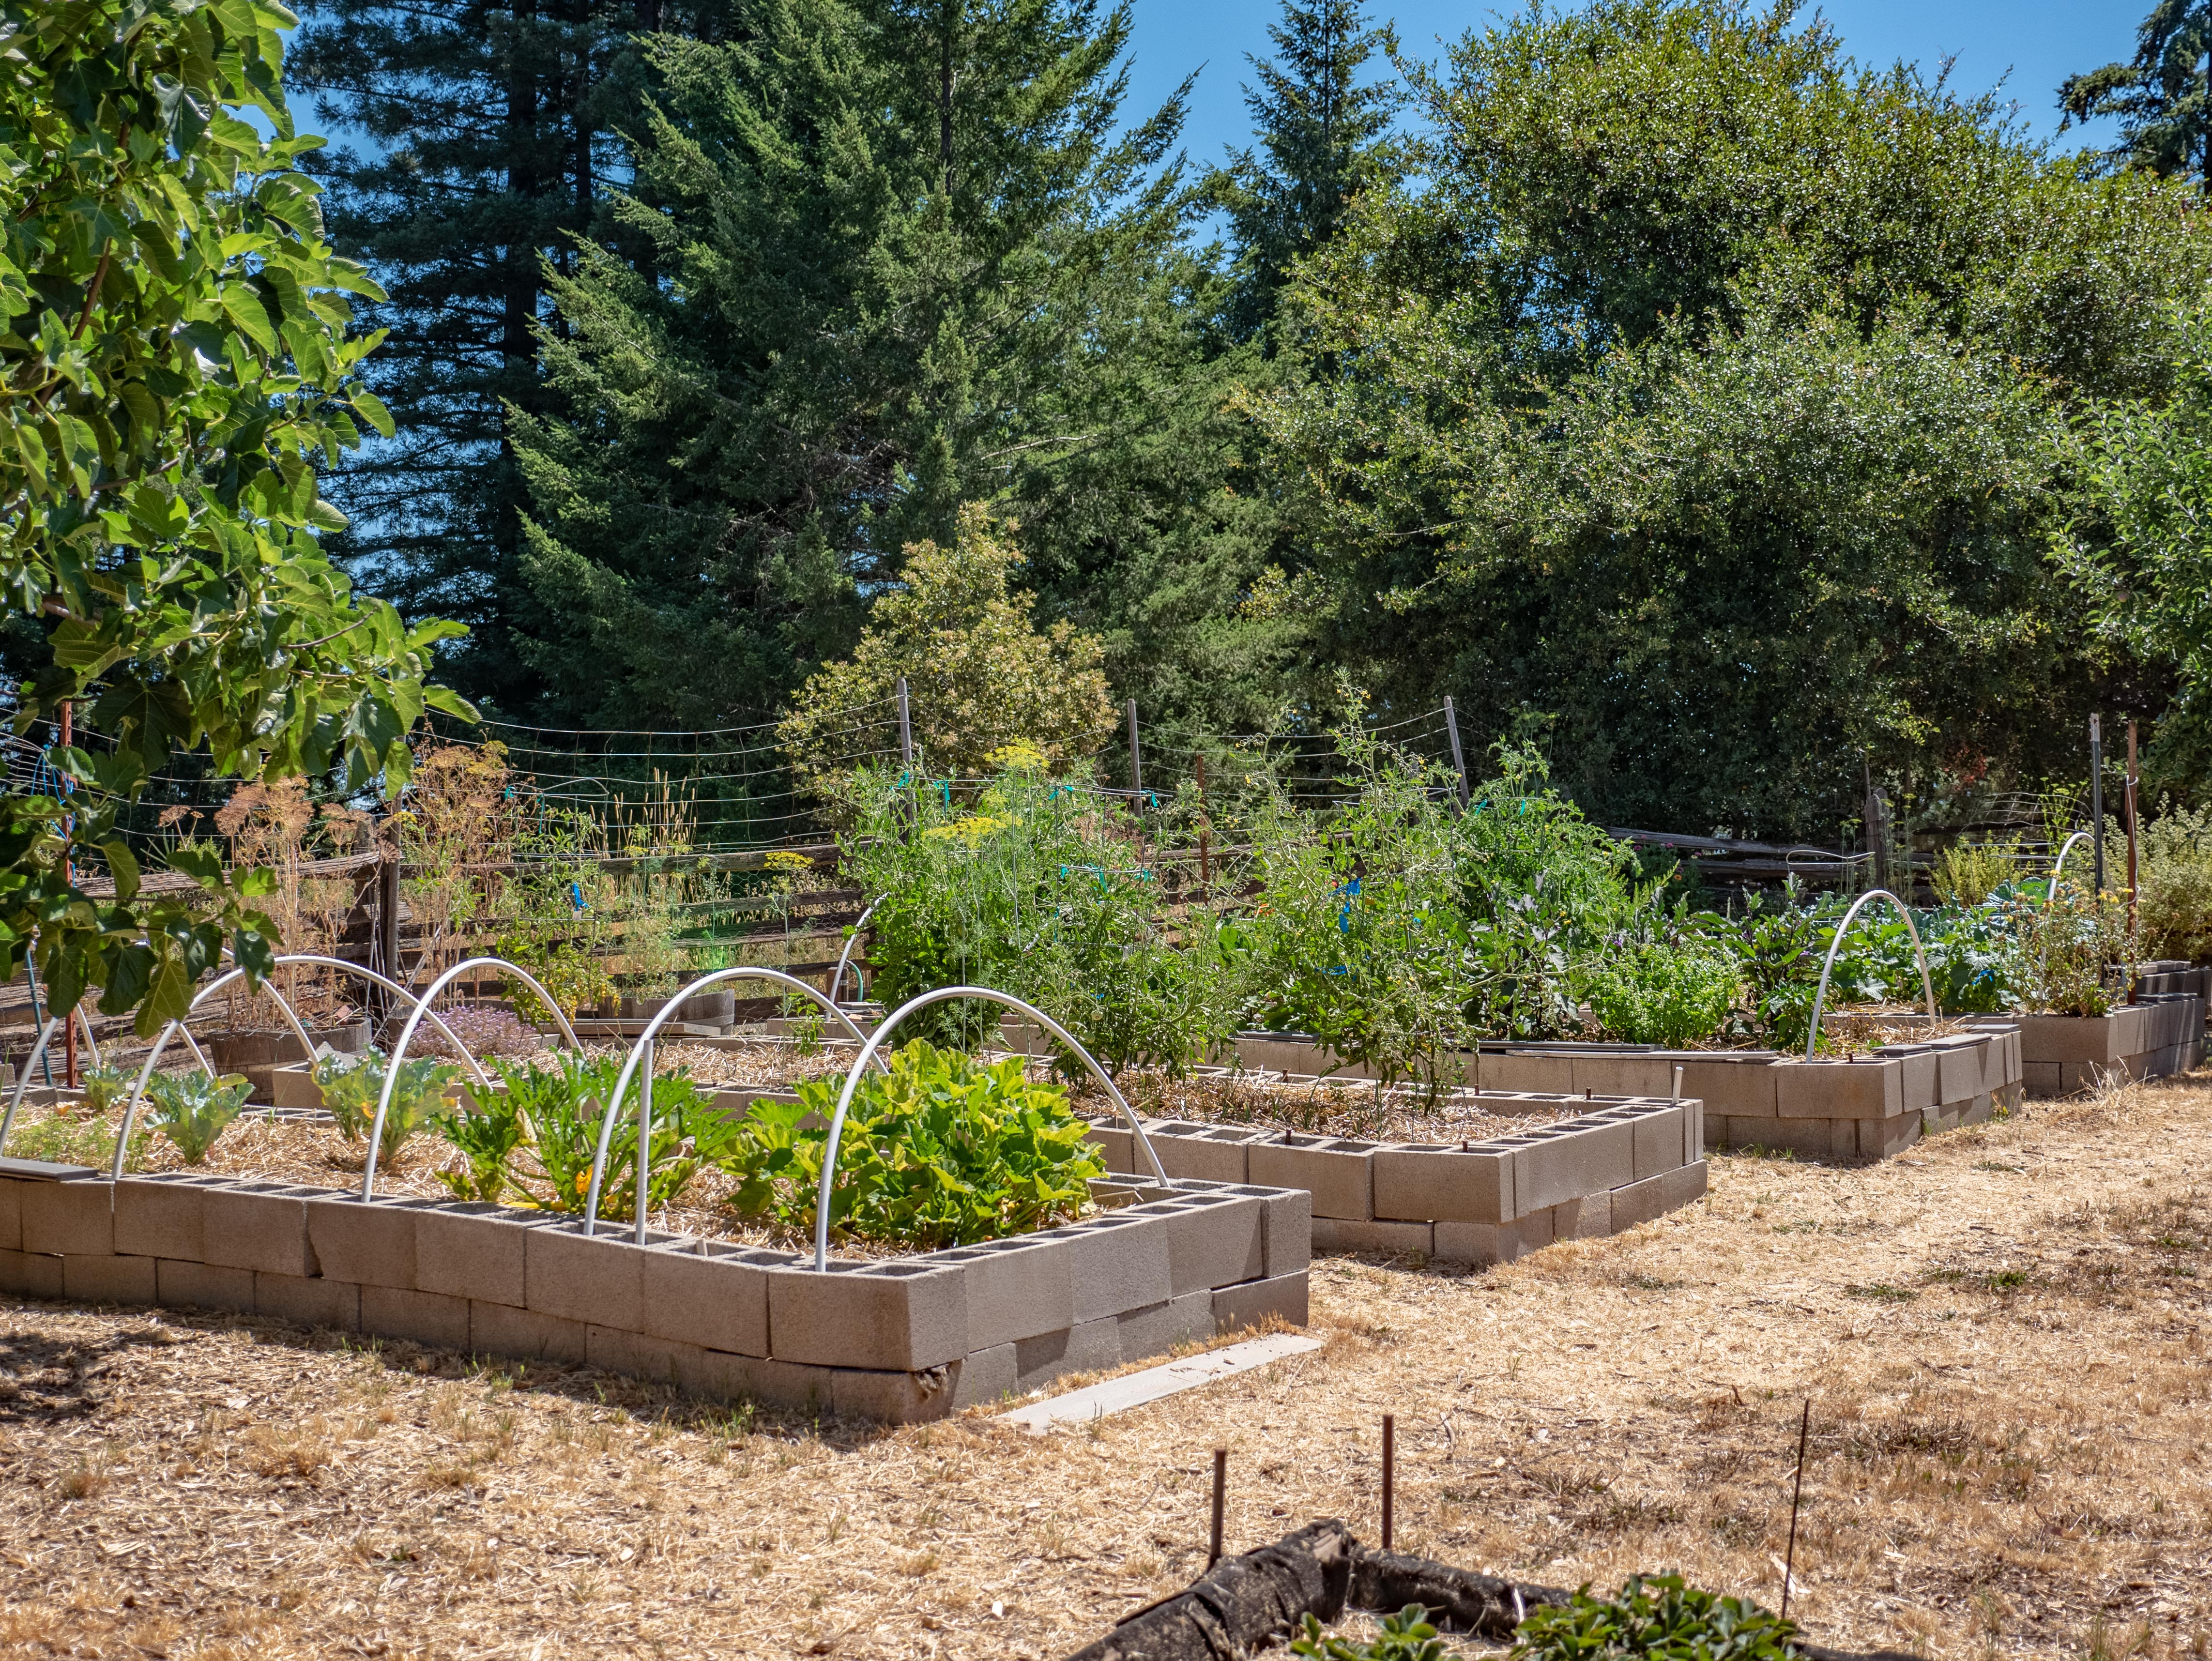 Raised bed gardens with timed irrigation.